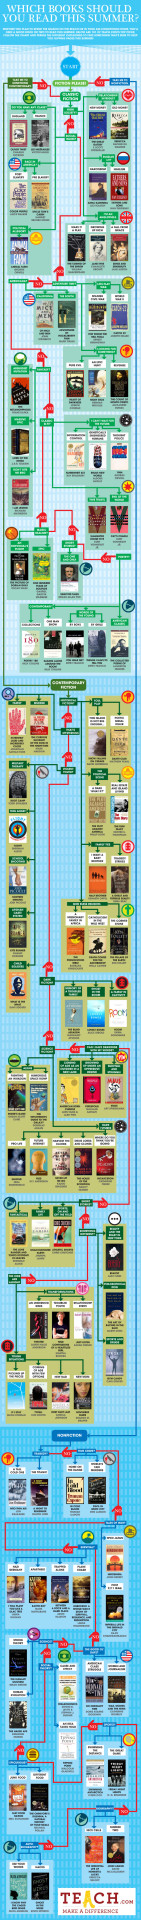 (via Summer Reading Flowchart: What Should You Read On Your Break? | Teach.com)  in case, like me, you're already daydreaming of summer reading, here's a handy flowchart to help you find some new books to read!